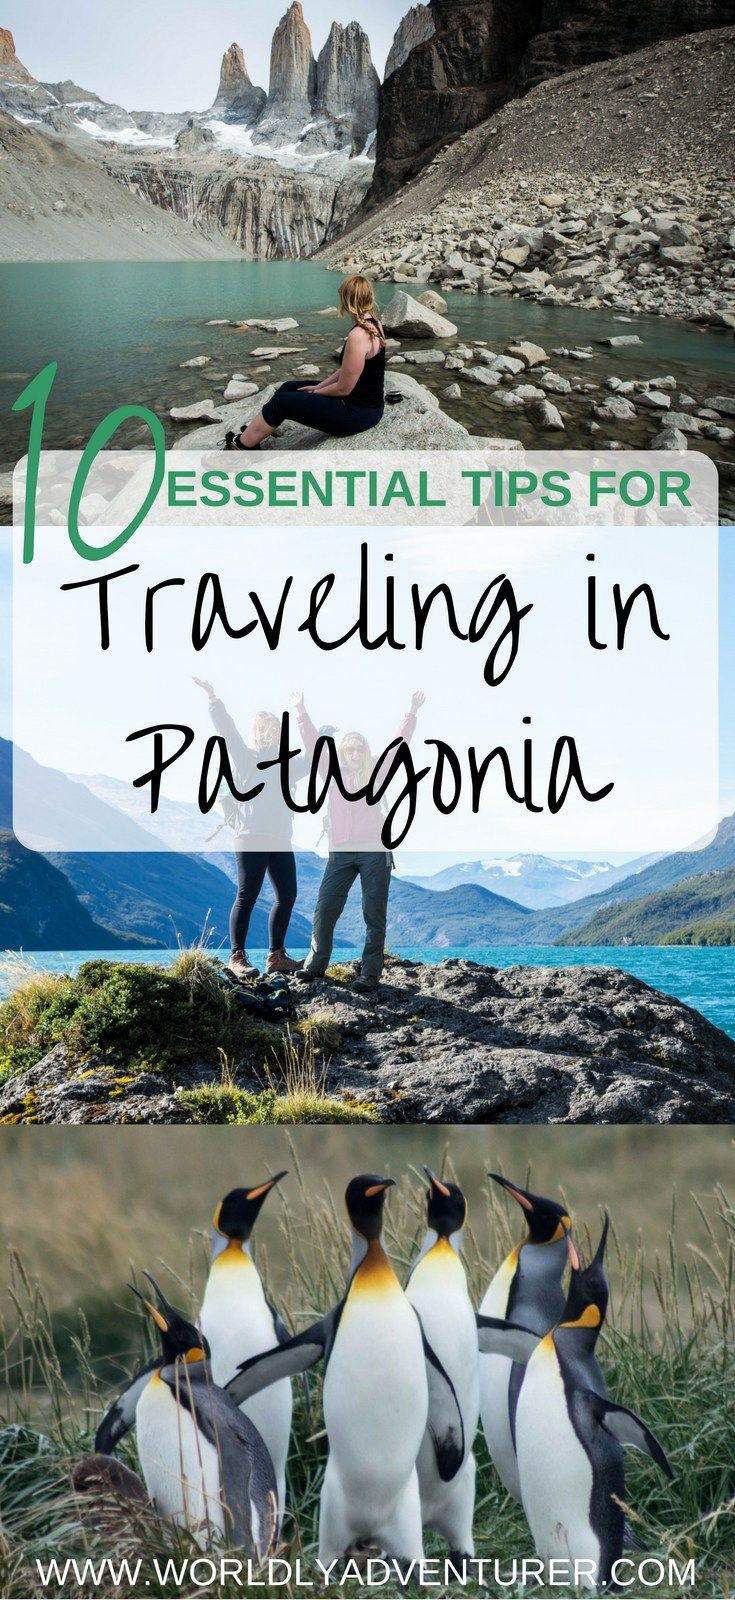 Planning a backpacking trip to Patagonia? Read my essential tips for planning like a pro and making the most of traveling in South America's most stunning region.